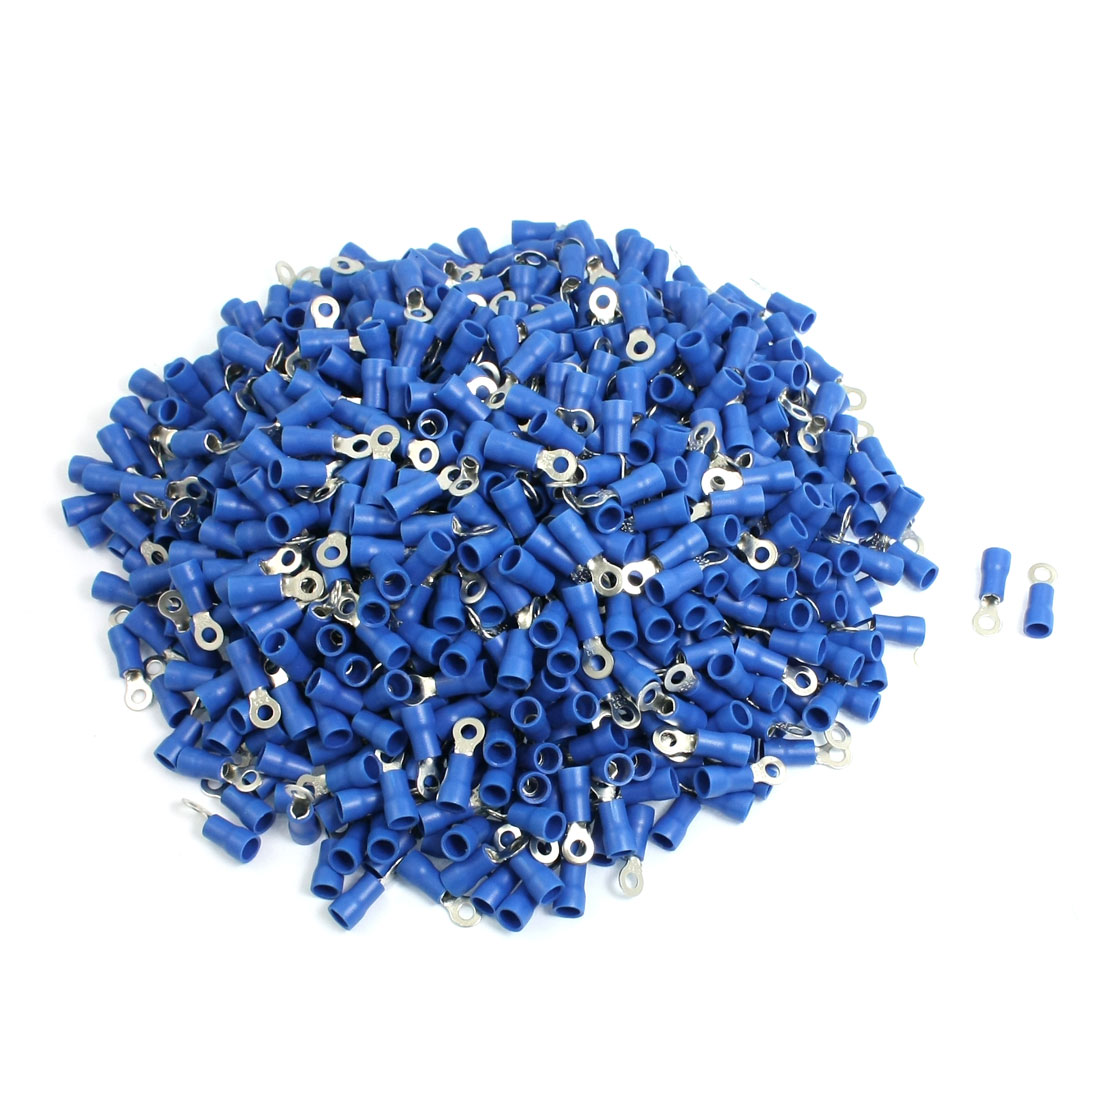 1000-x-Blue-PVC-Insulating-Sleeve-Ring-Terminals-Cable-Lug-RV2-3-2-AWG-16-14